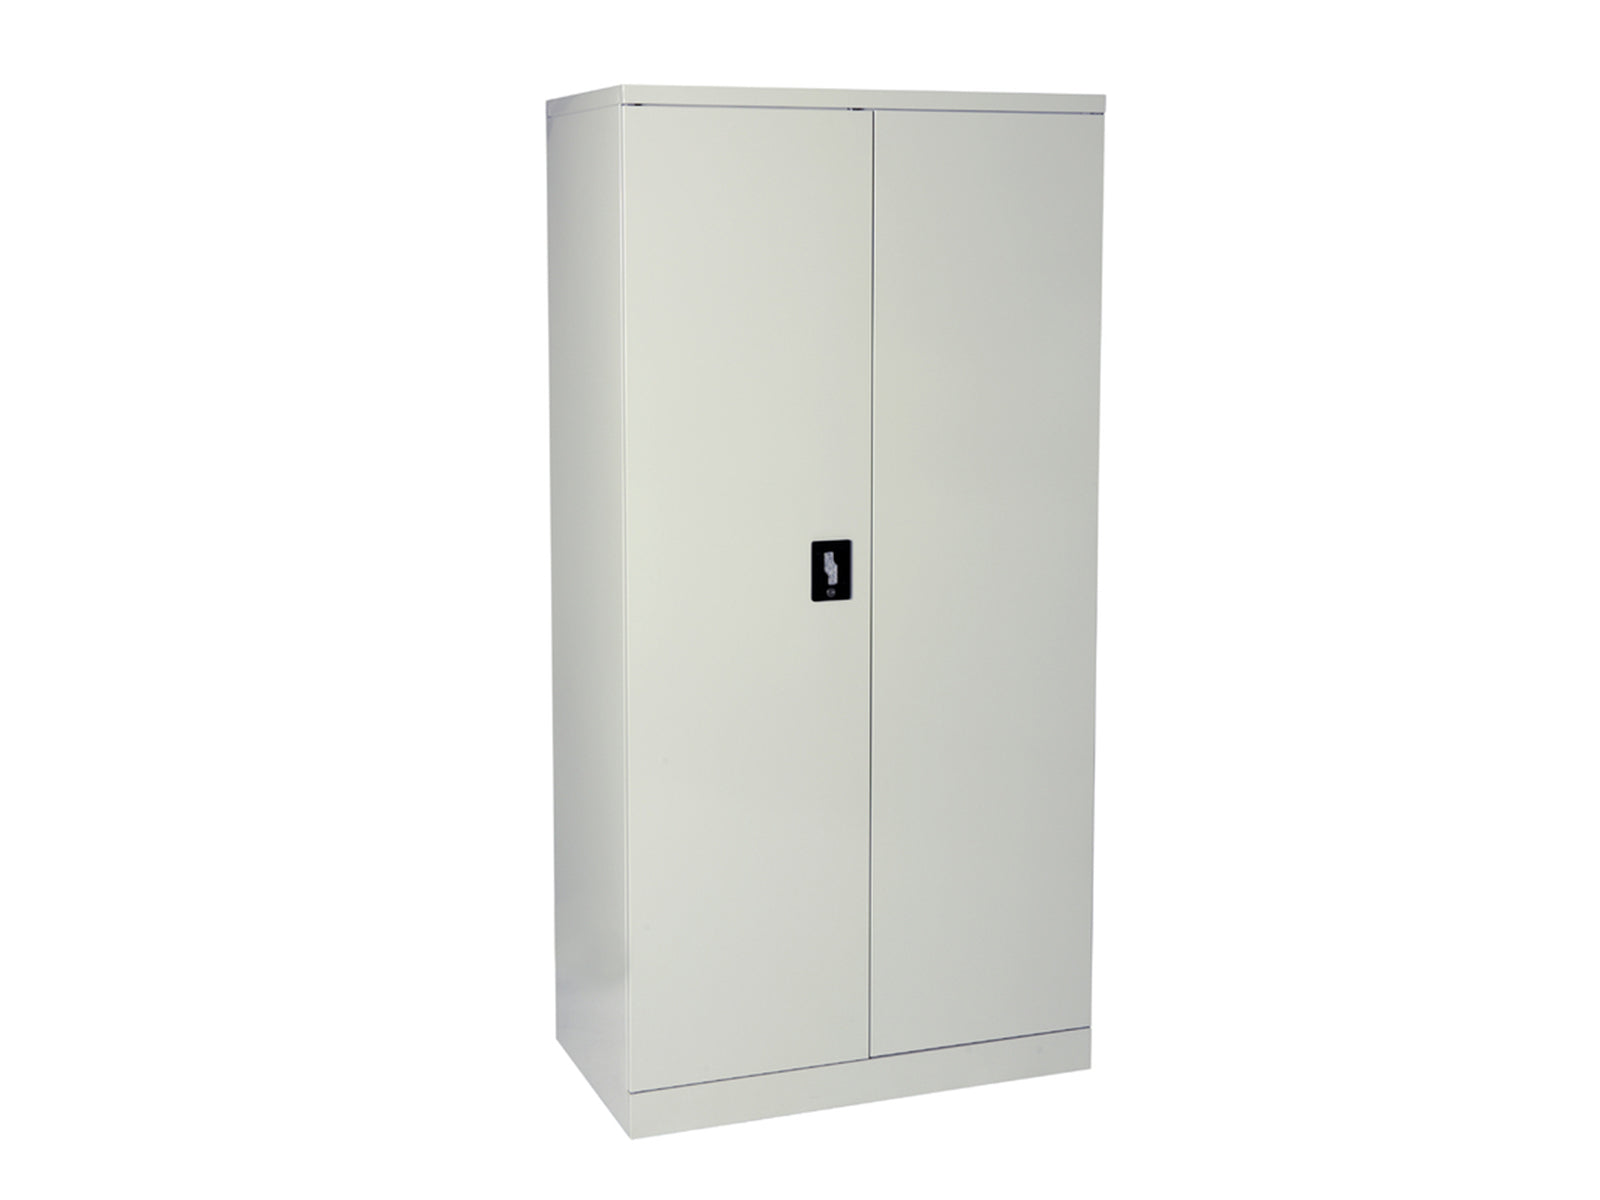 Proceed Steel 1.8m Cupboard - Workspace Furniture Home and Office Filing and Steel Storage